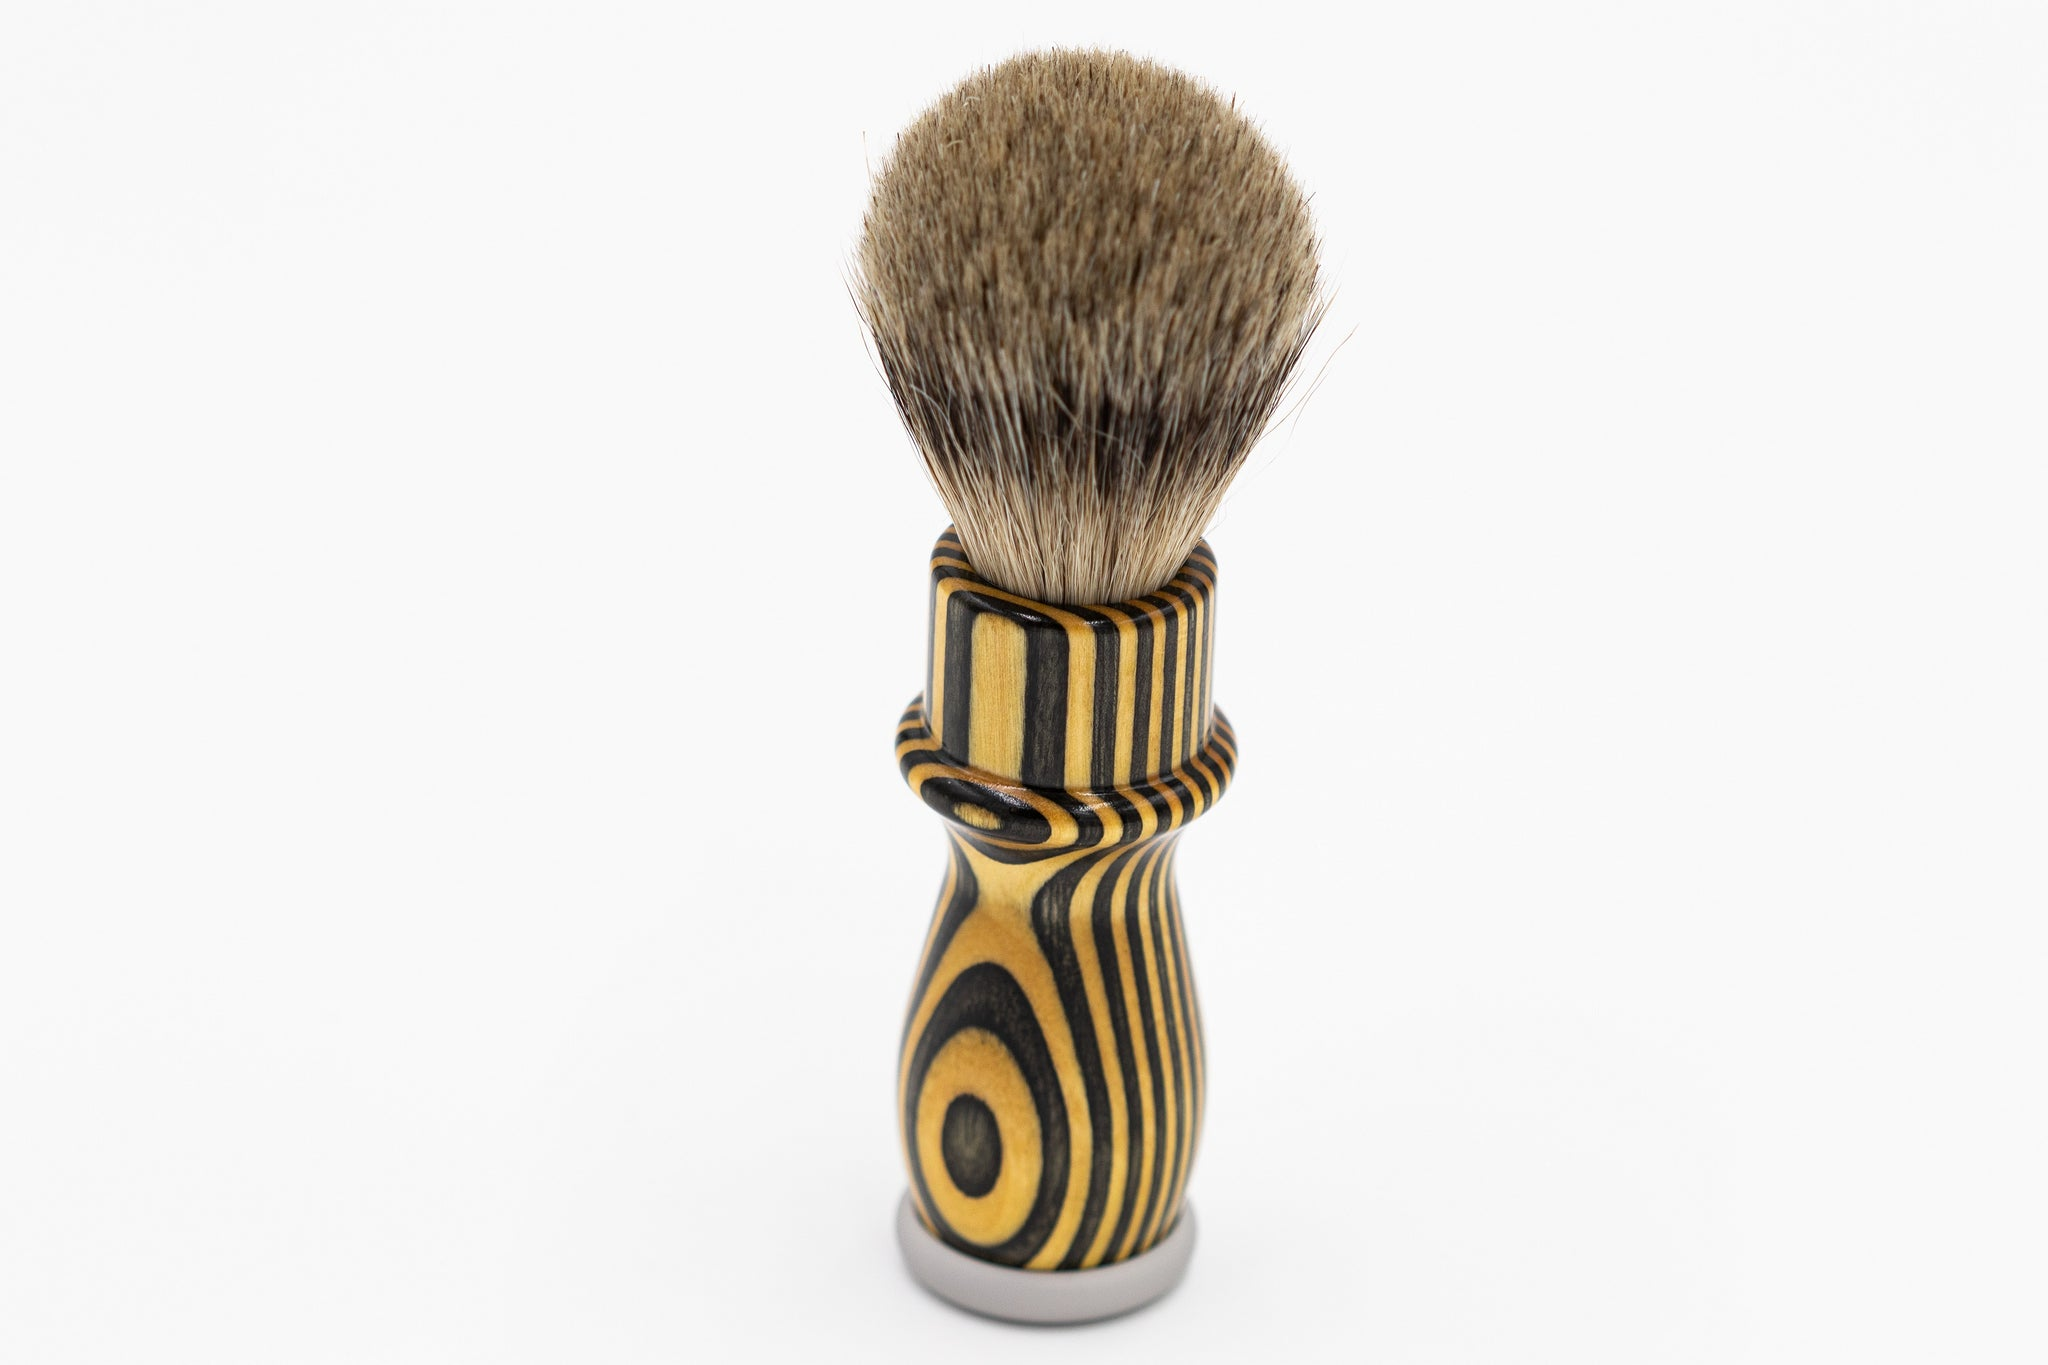 Crossbones Shaving Brush